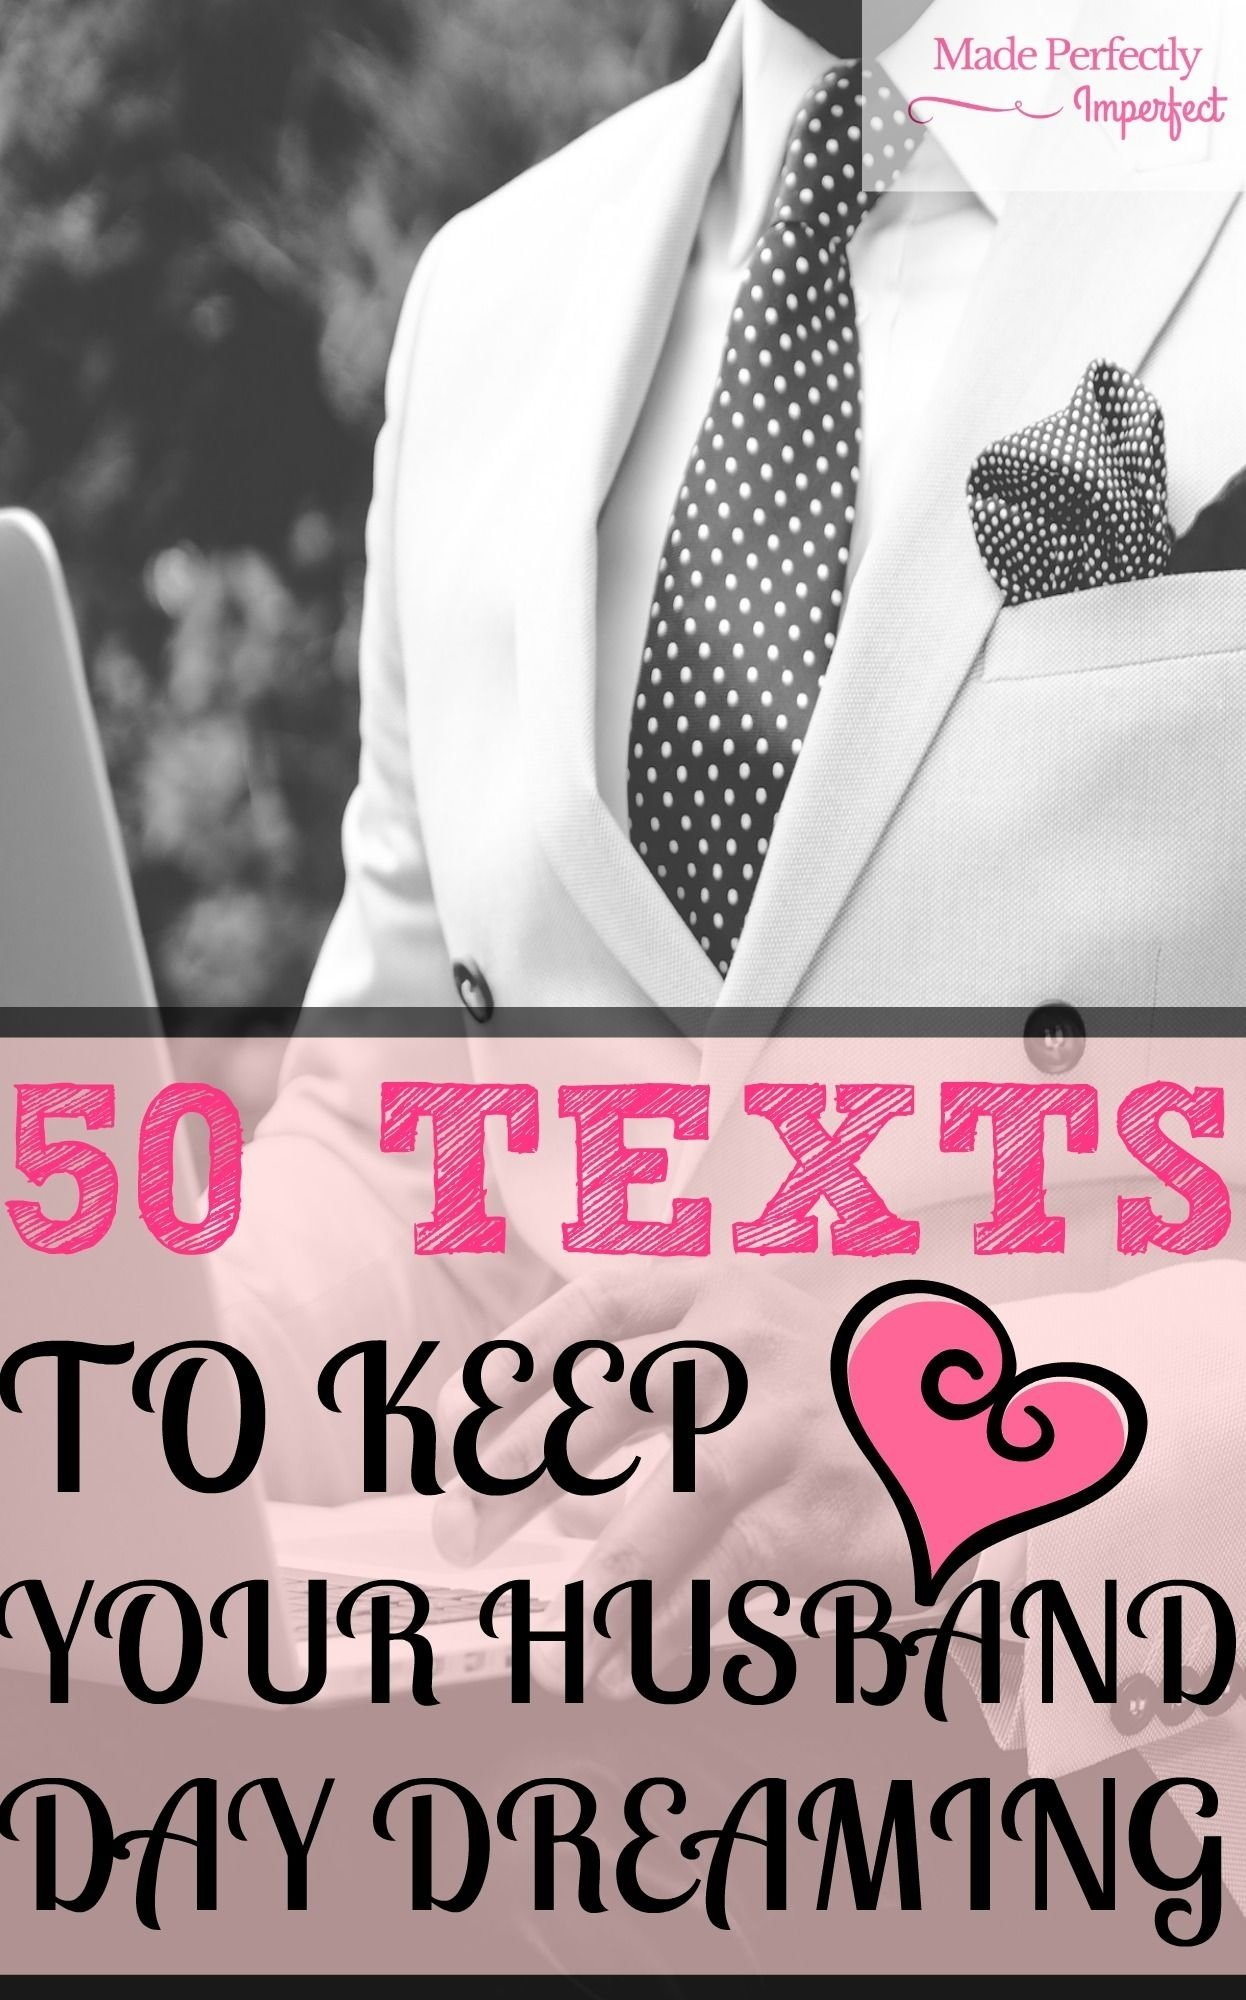 10 Elegant Ideas To Spice Up The Bedroom For Him 50 texts to keep your husband daydreaming texts 50th and 1 2021